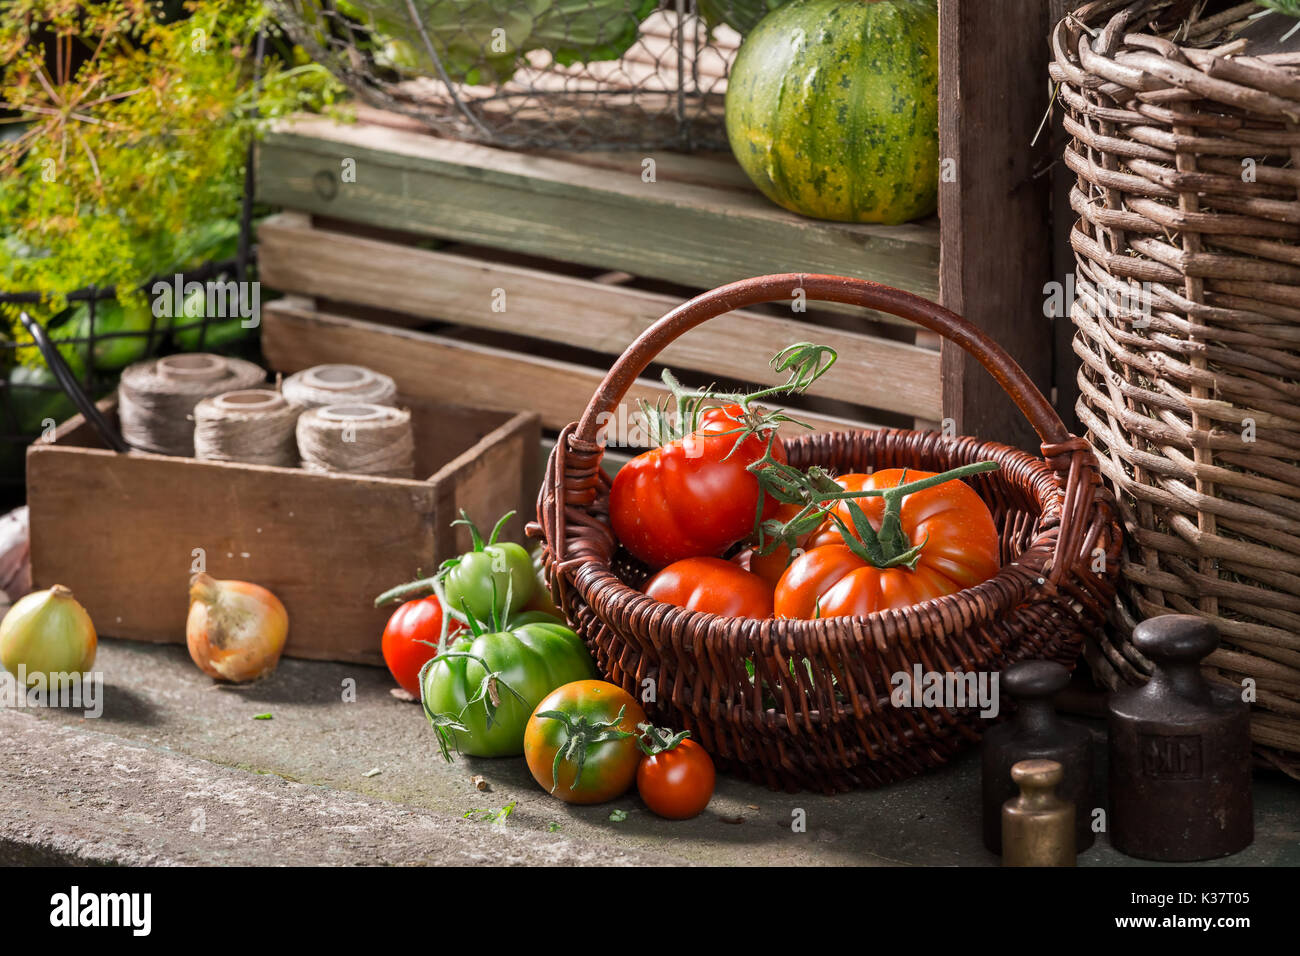 Vintage basement with harvested vegetables and fruits - Stock Image